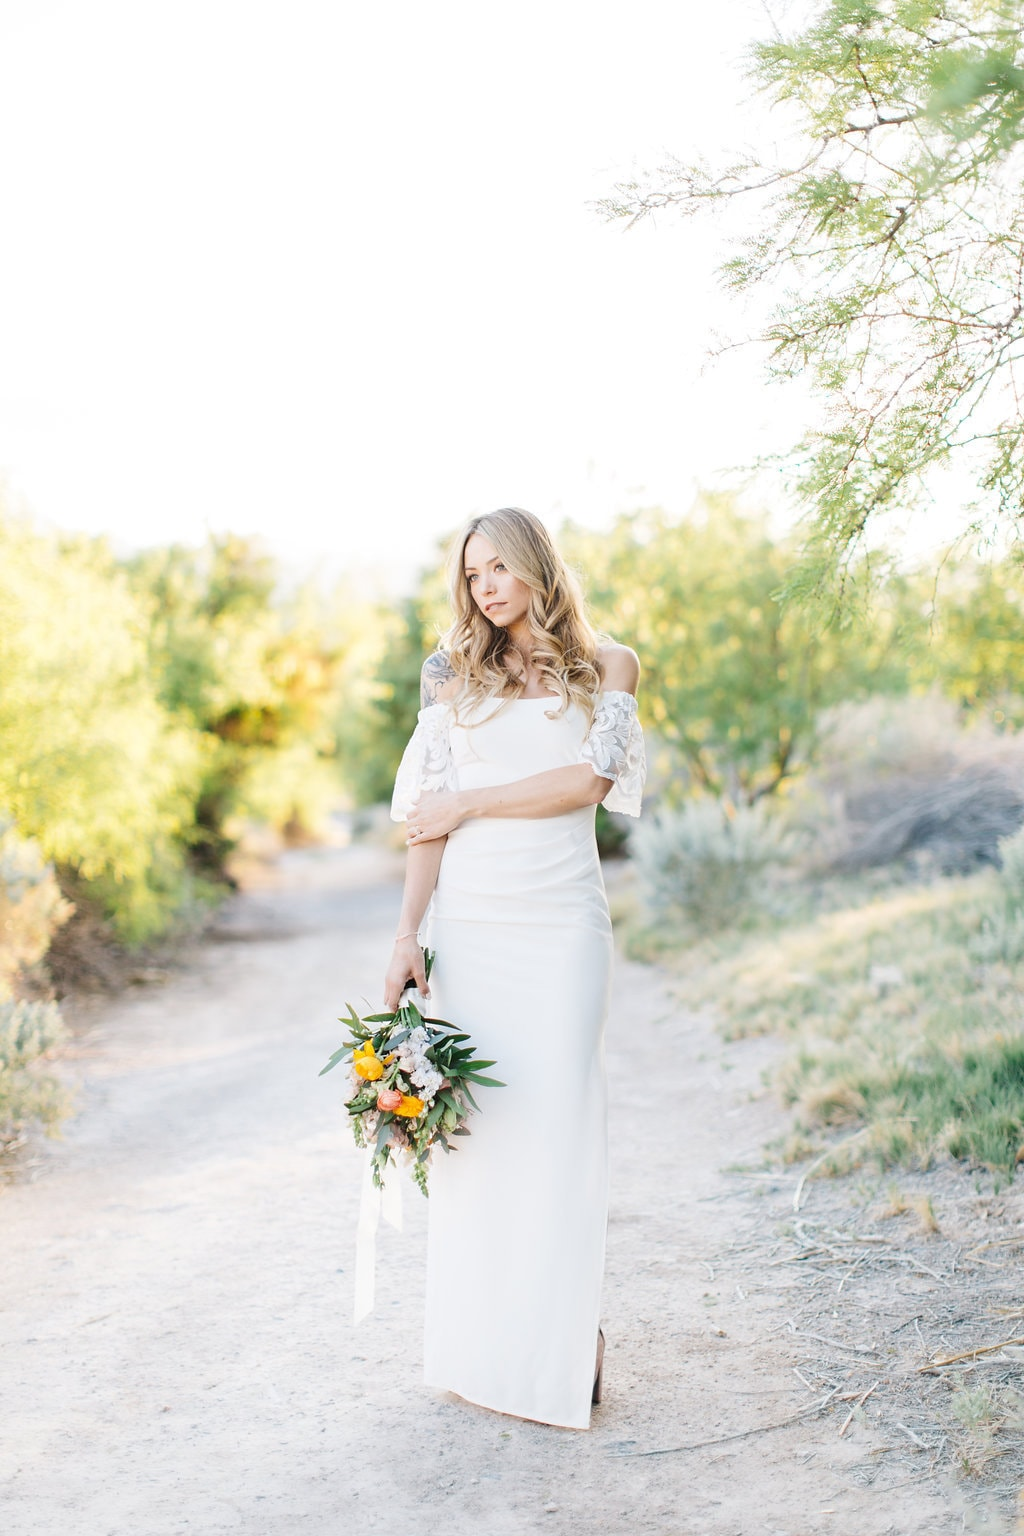 Off the Shoulder Wedding Dress | Credit: Julia Stockton Photography